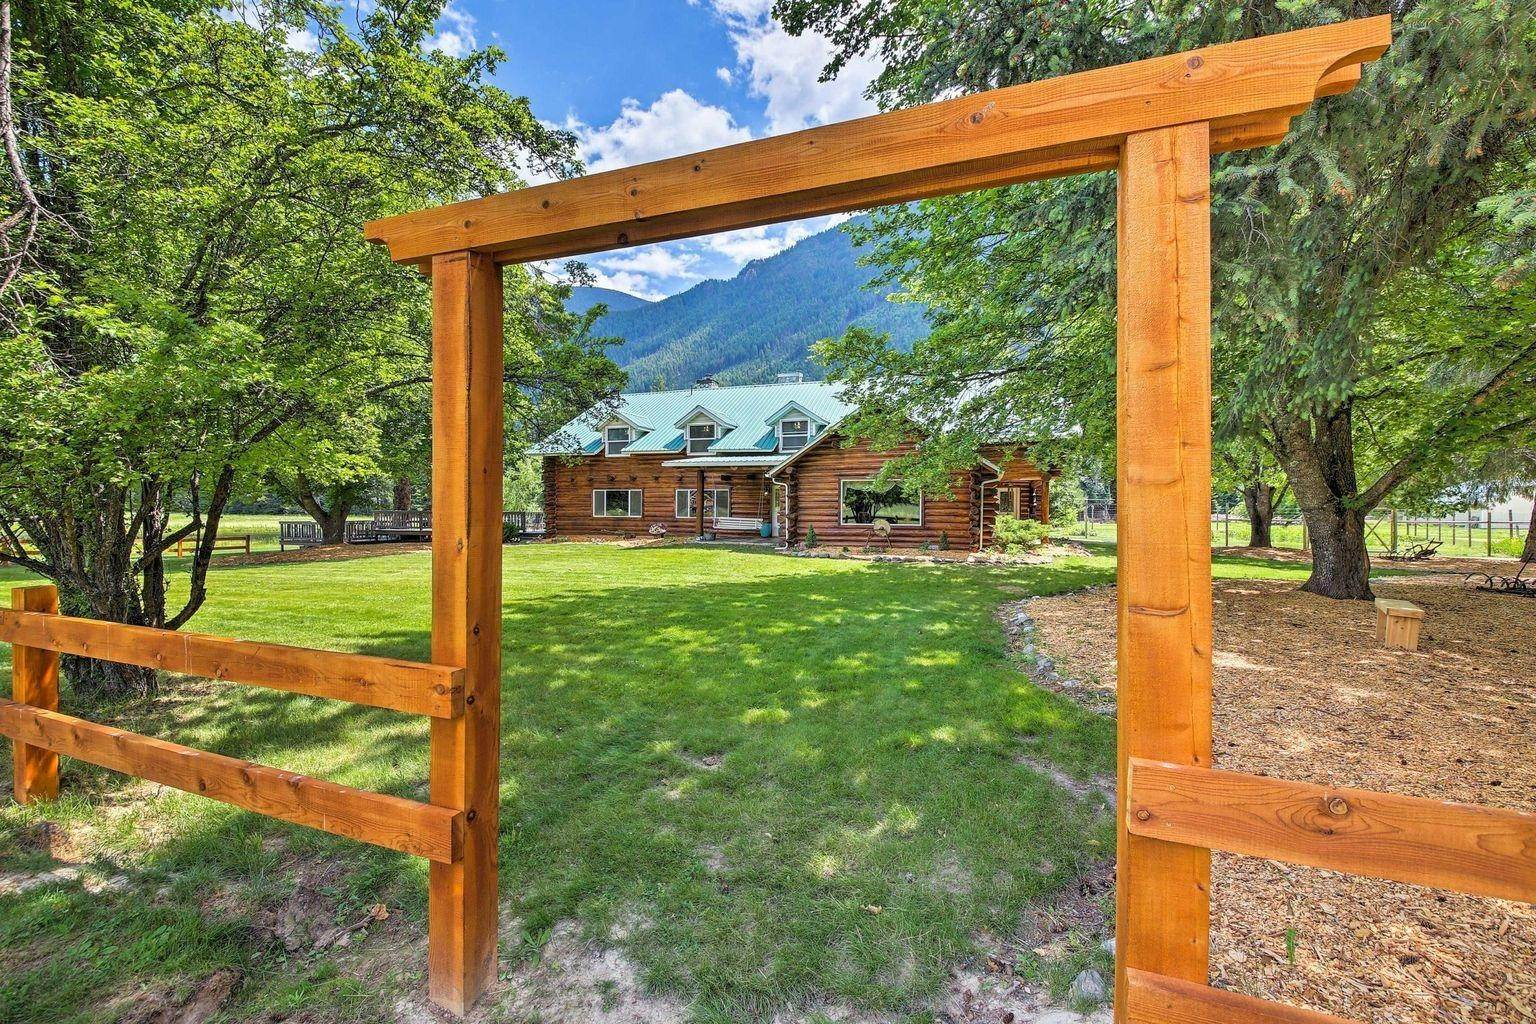 Commercial for Sale at 1021 Swanson Lodge Road Troy, Montana 59935 United States